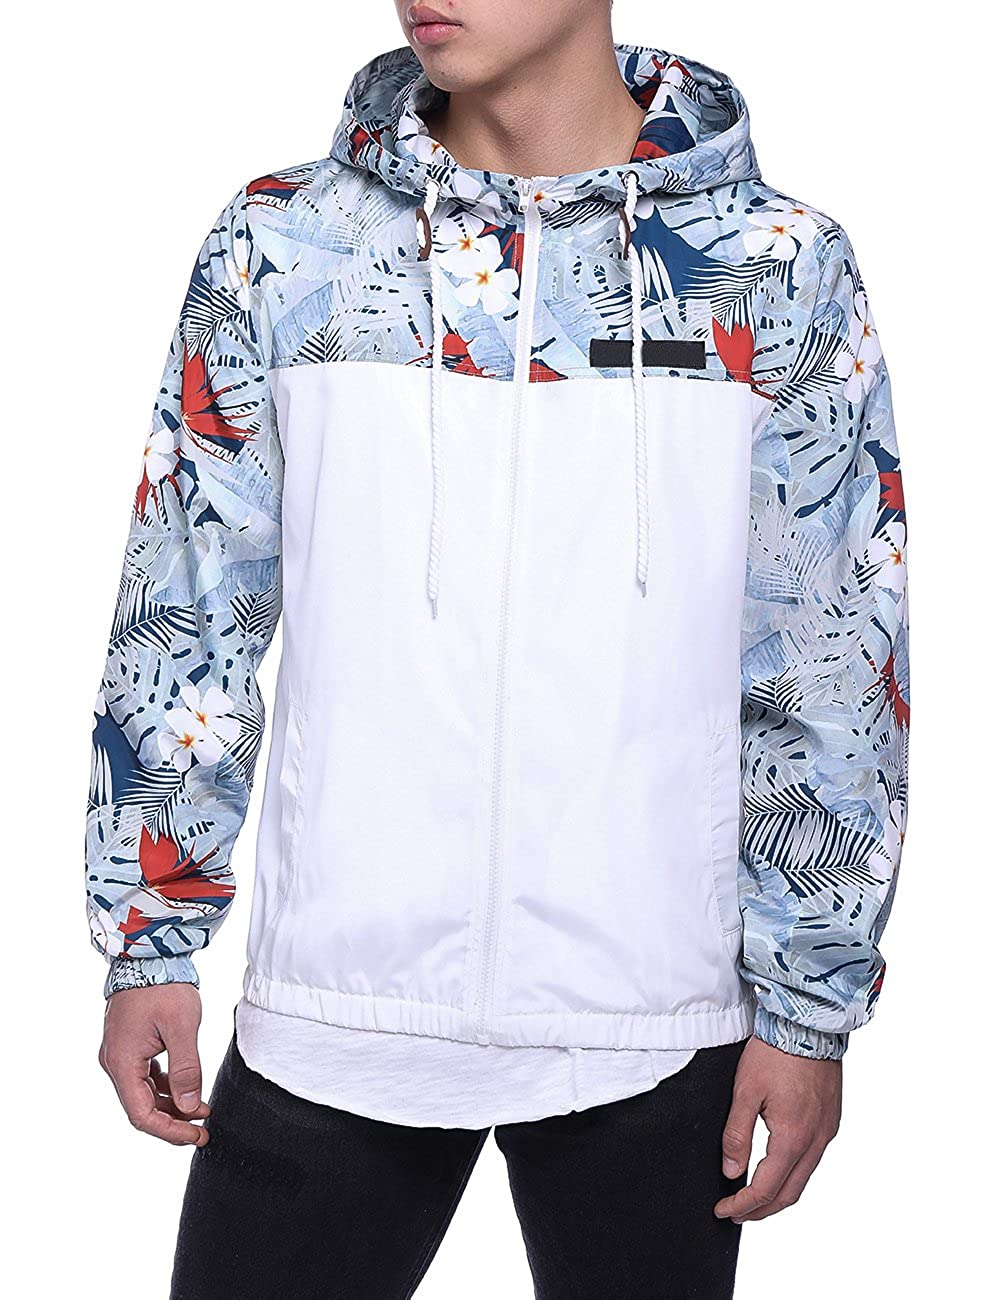 HEQU Men's Floral Hooded Windbreaker Lightweight Zip-up Jacket with Pocket